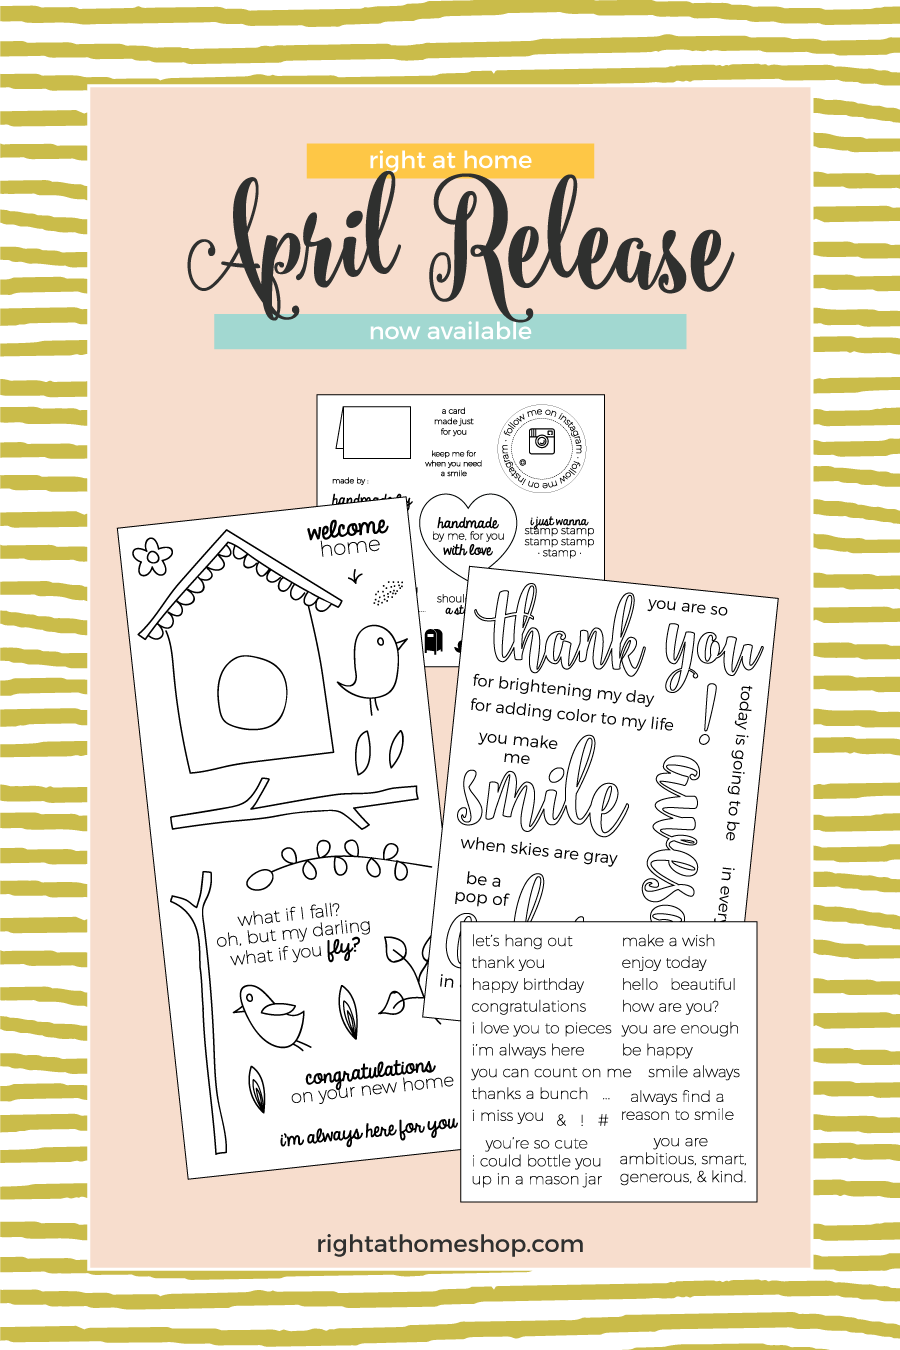 Right at Home Stamps April Release Now Available - rightathomeshop.com/blog